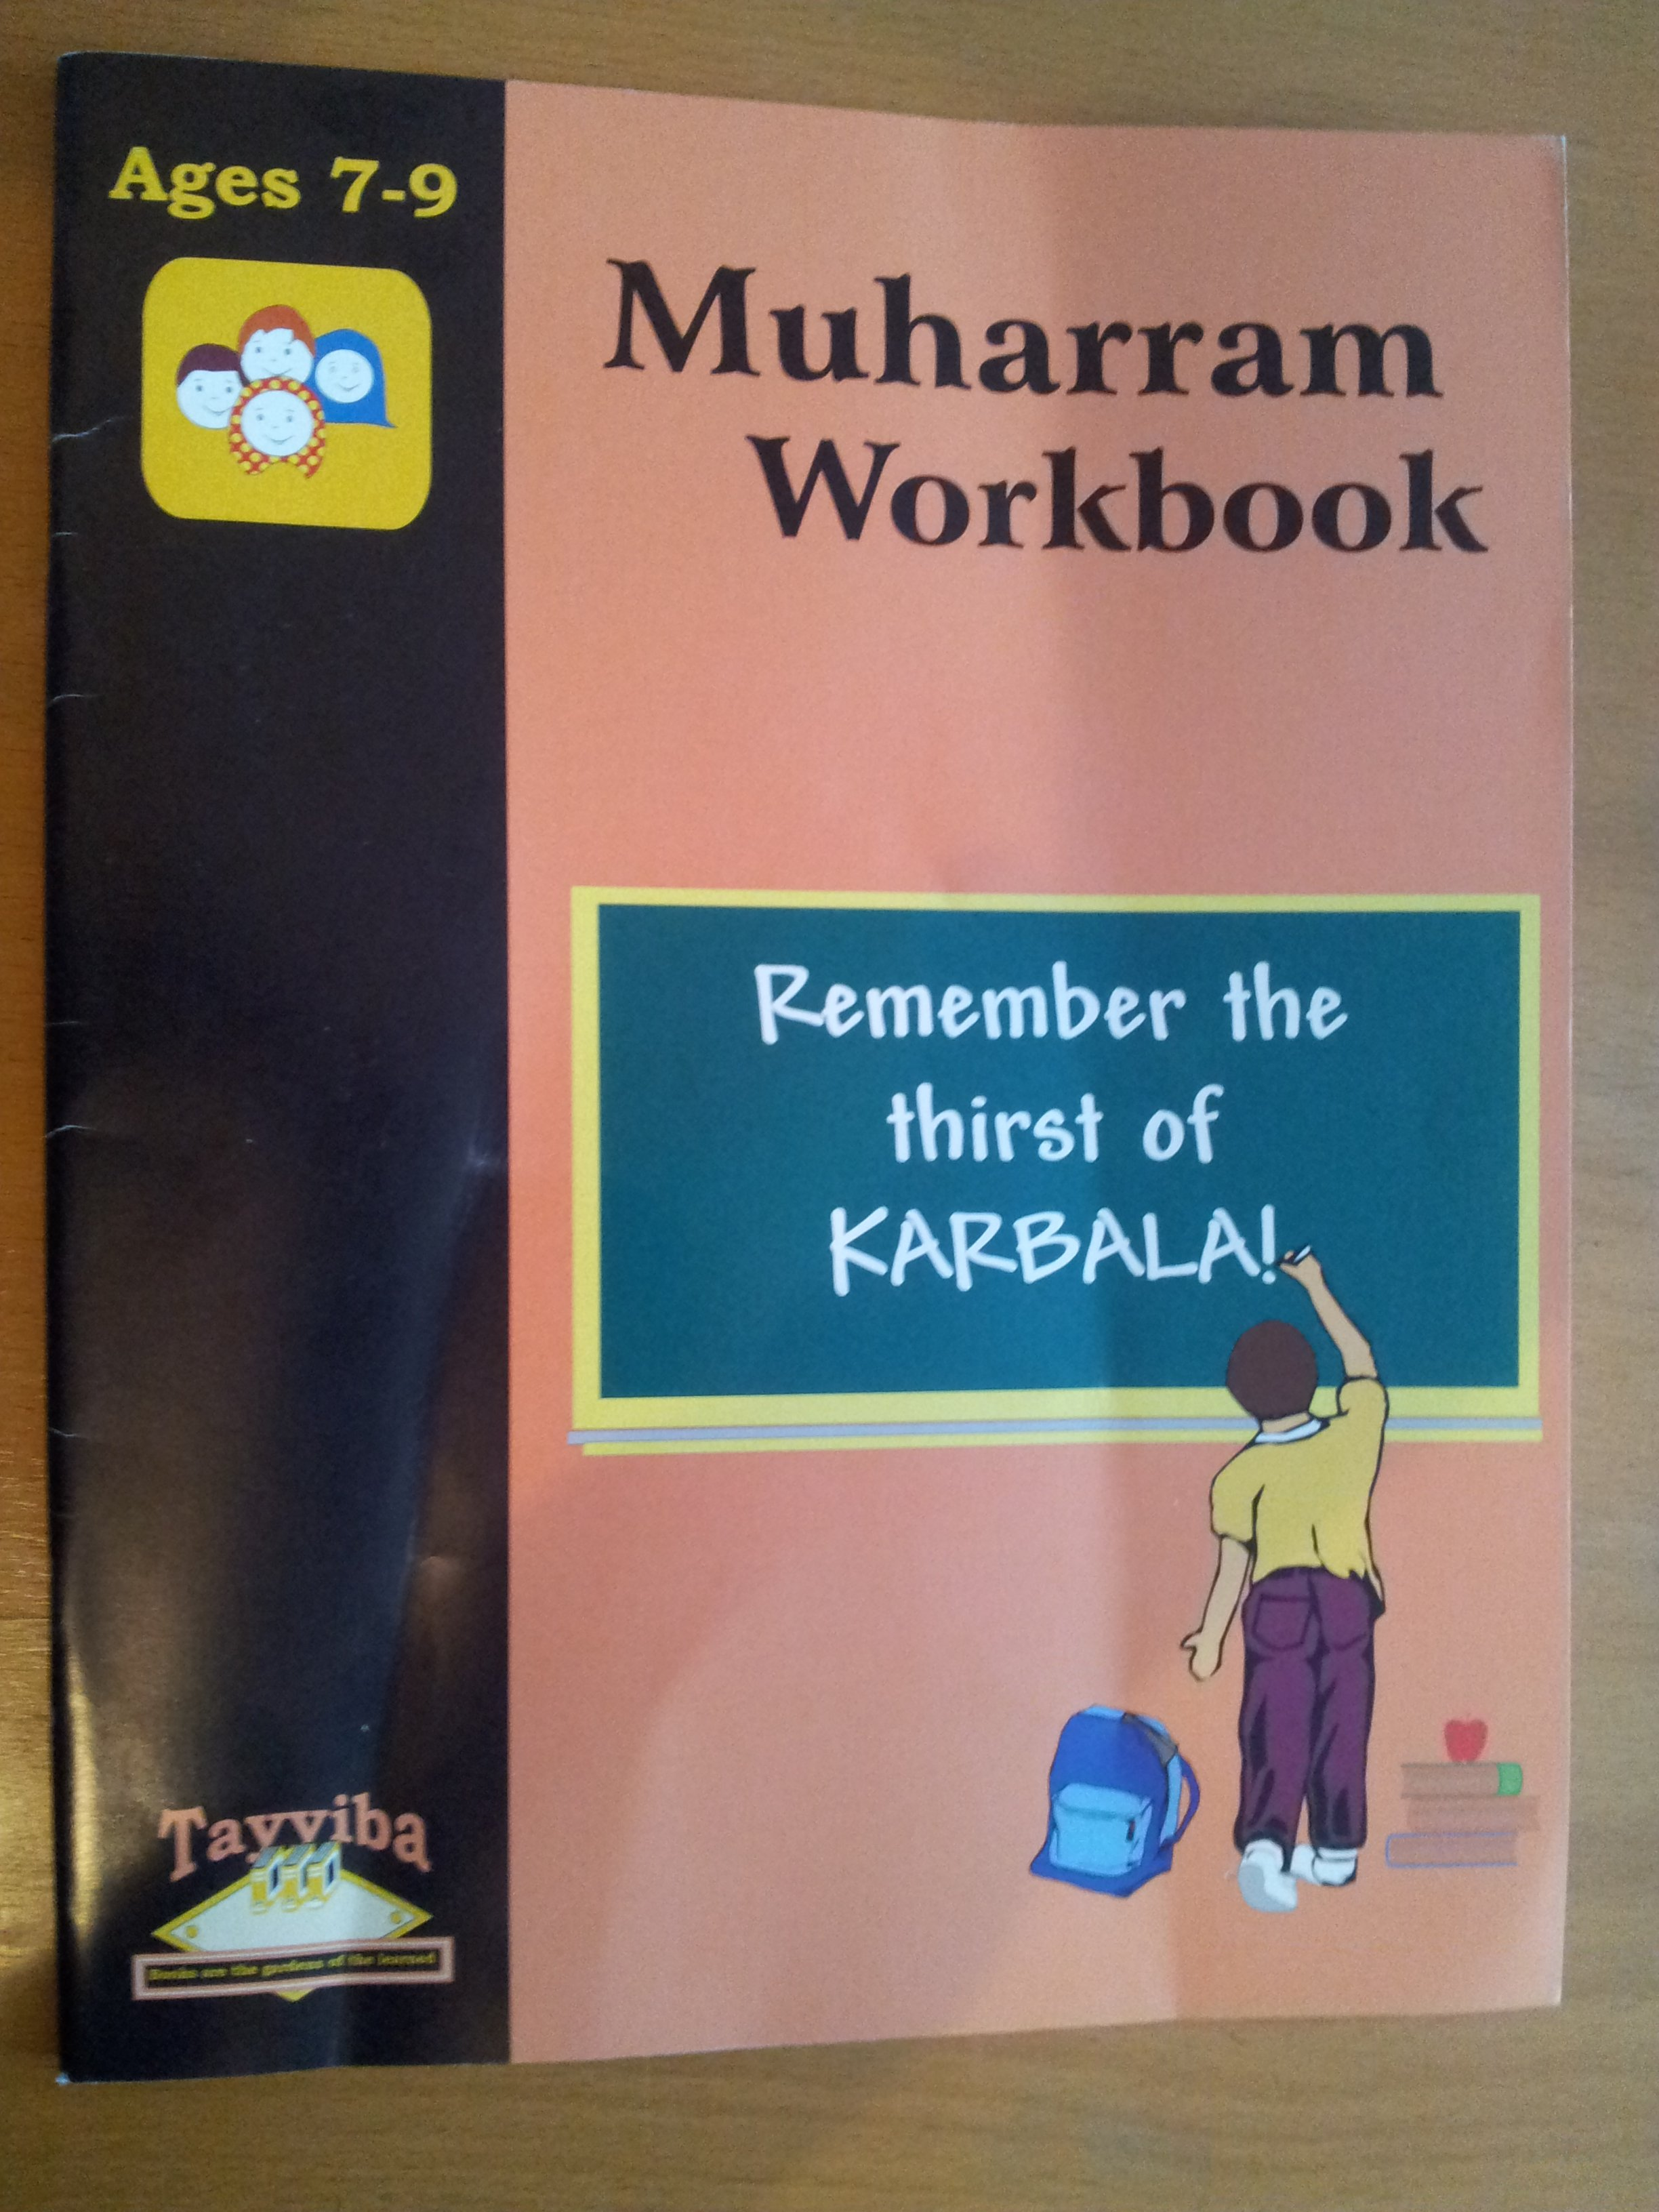 Muharram Idea 11 – Workbooks/Colouring Books and other resources